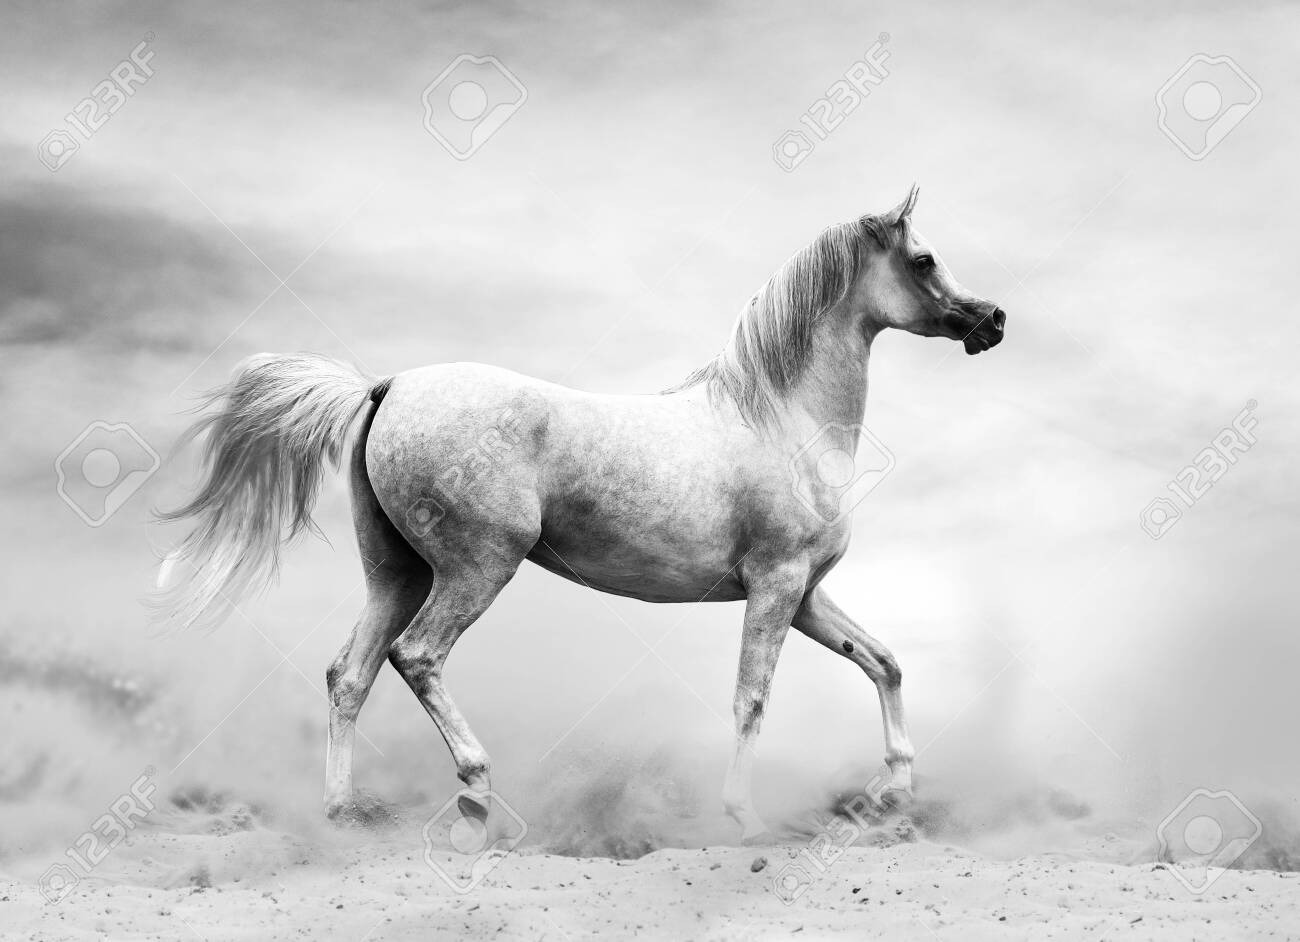 Arabian Horse In The Desert Black And White Shot Stock Photo Picture And Royalty Free Image Image 128592064